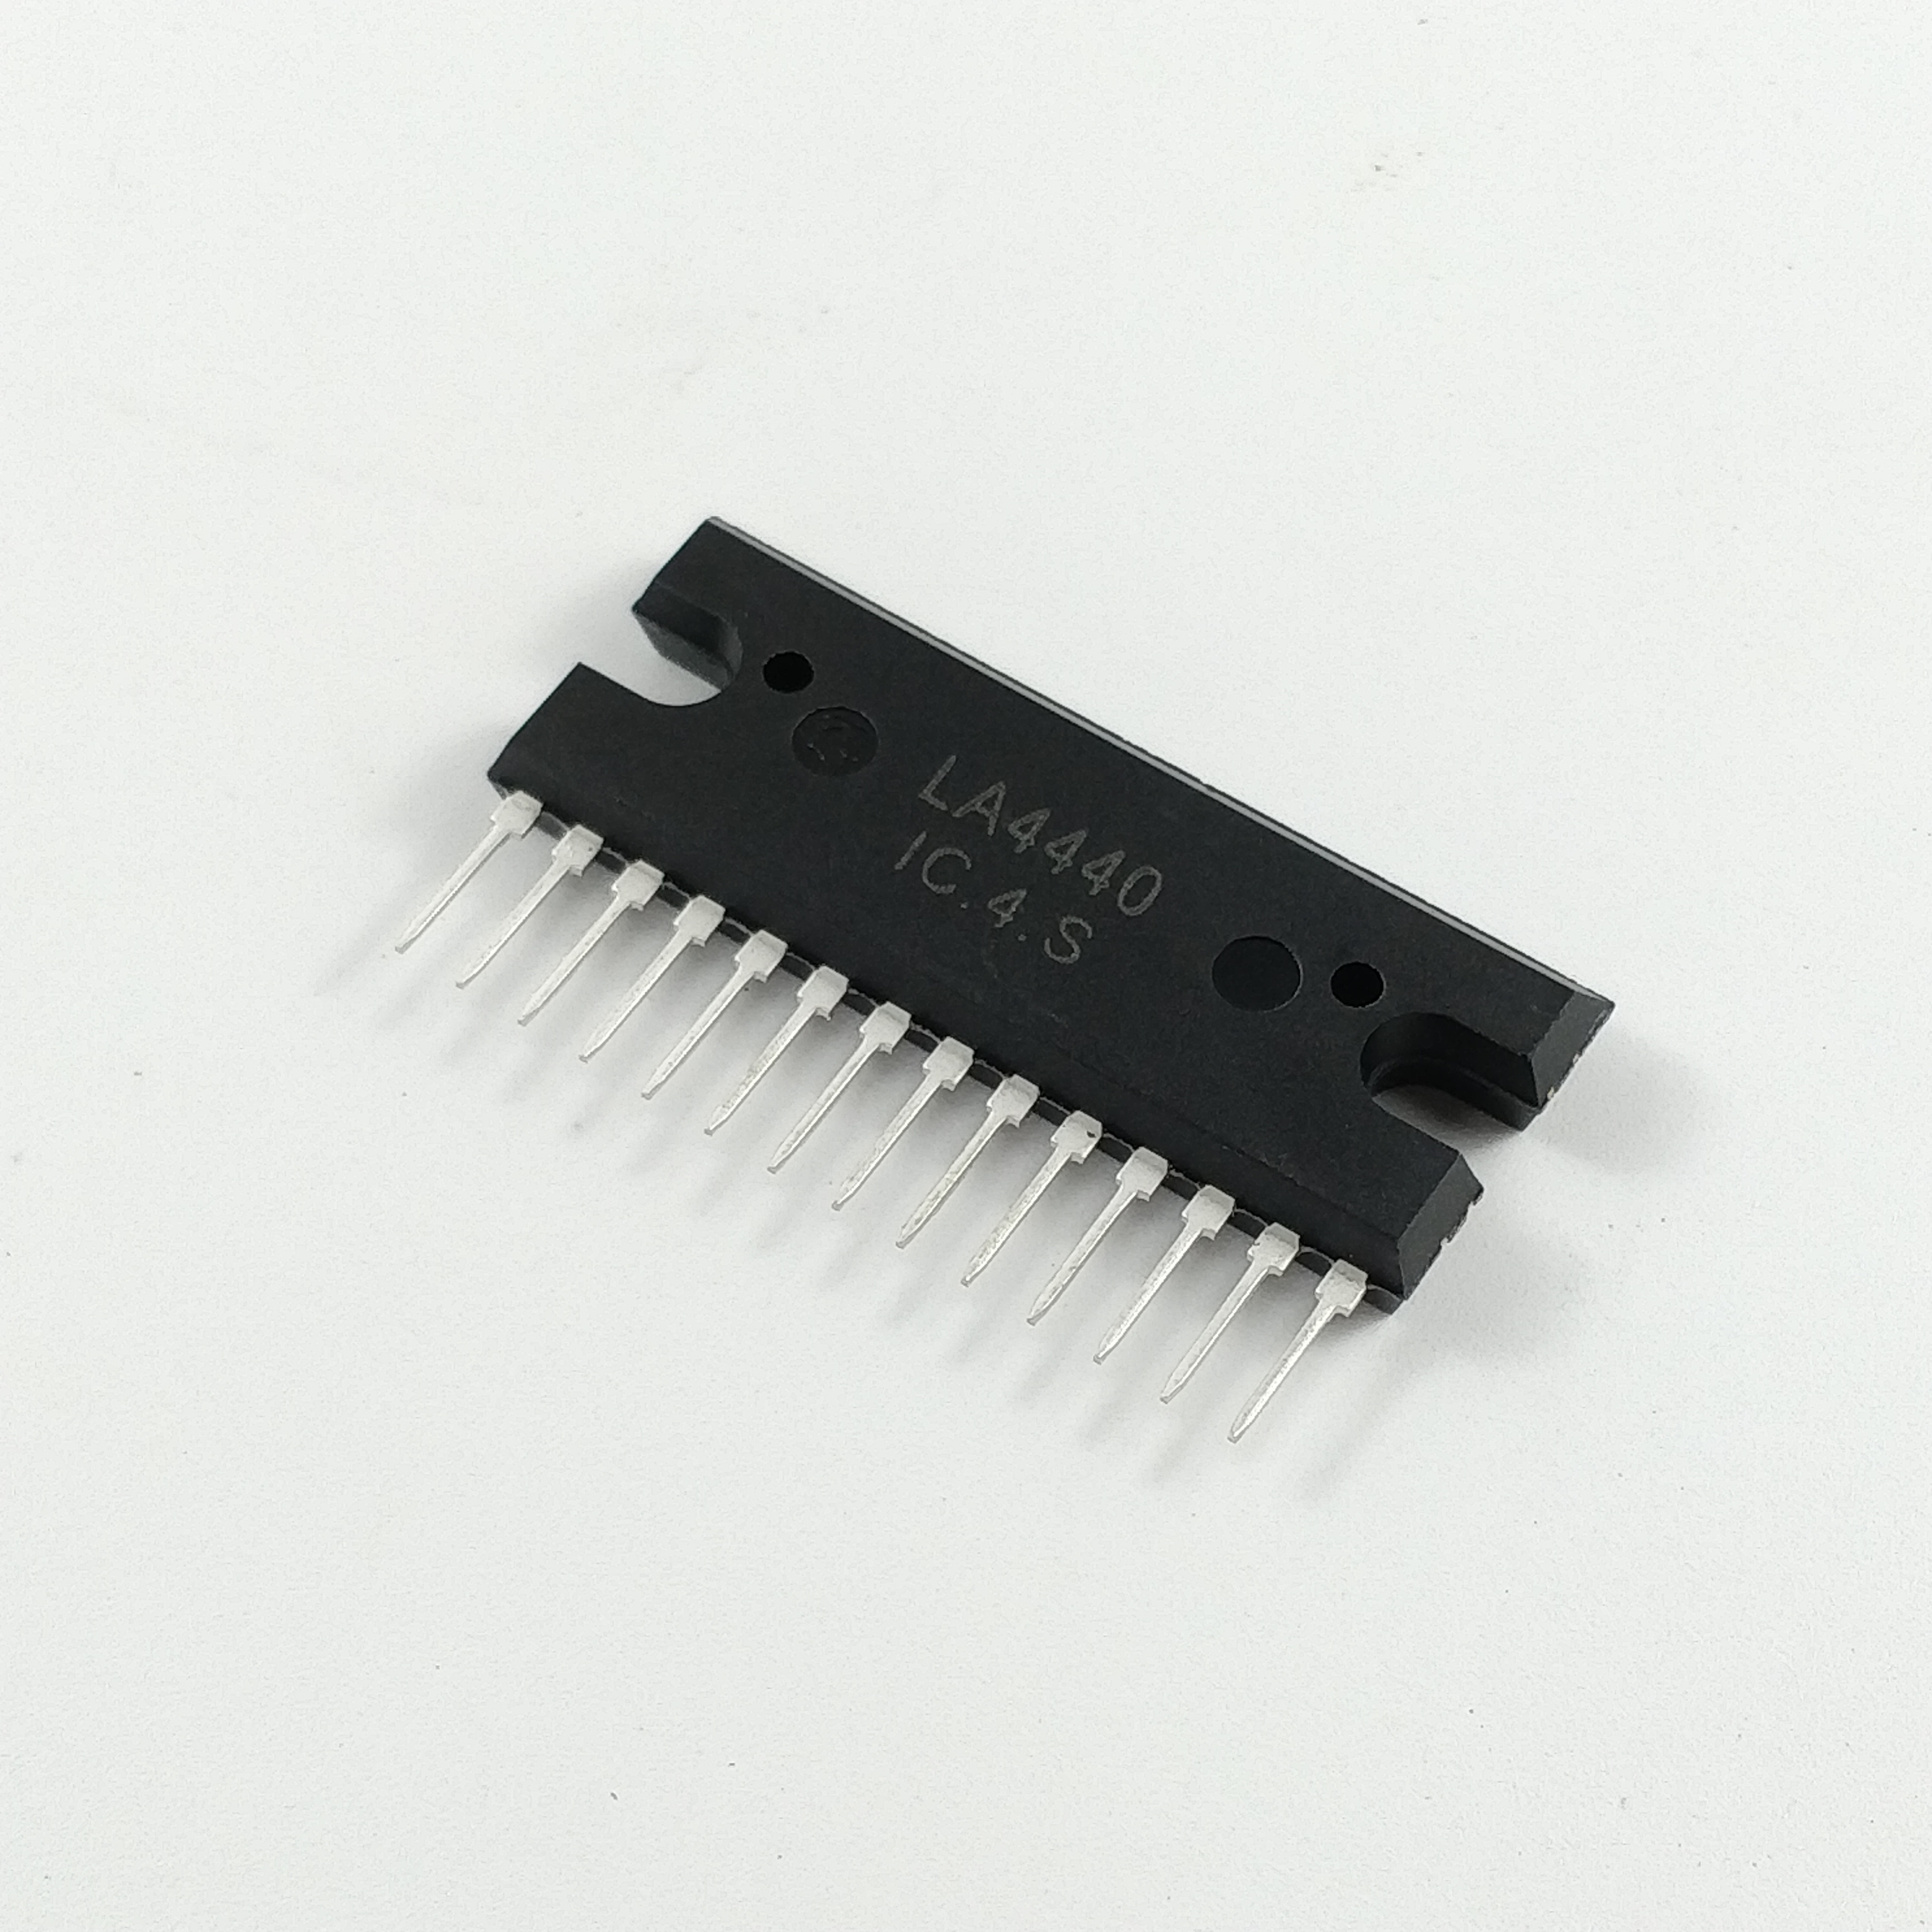 How to check 4440 ic